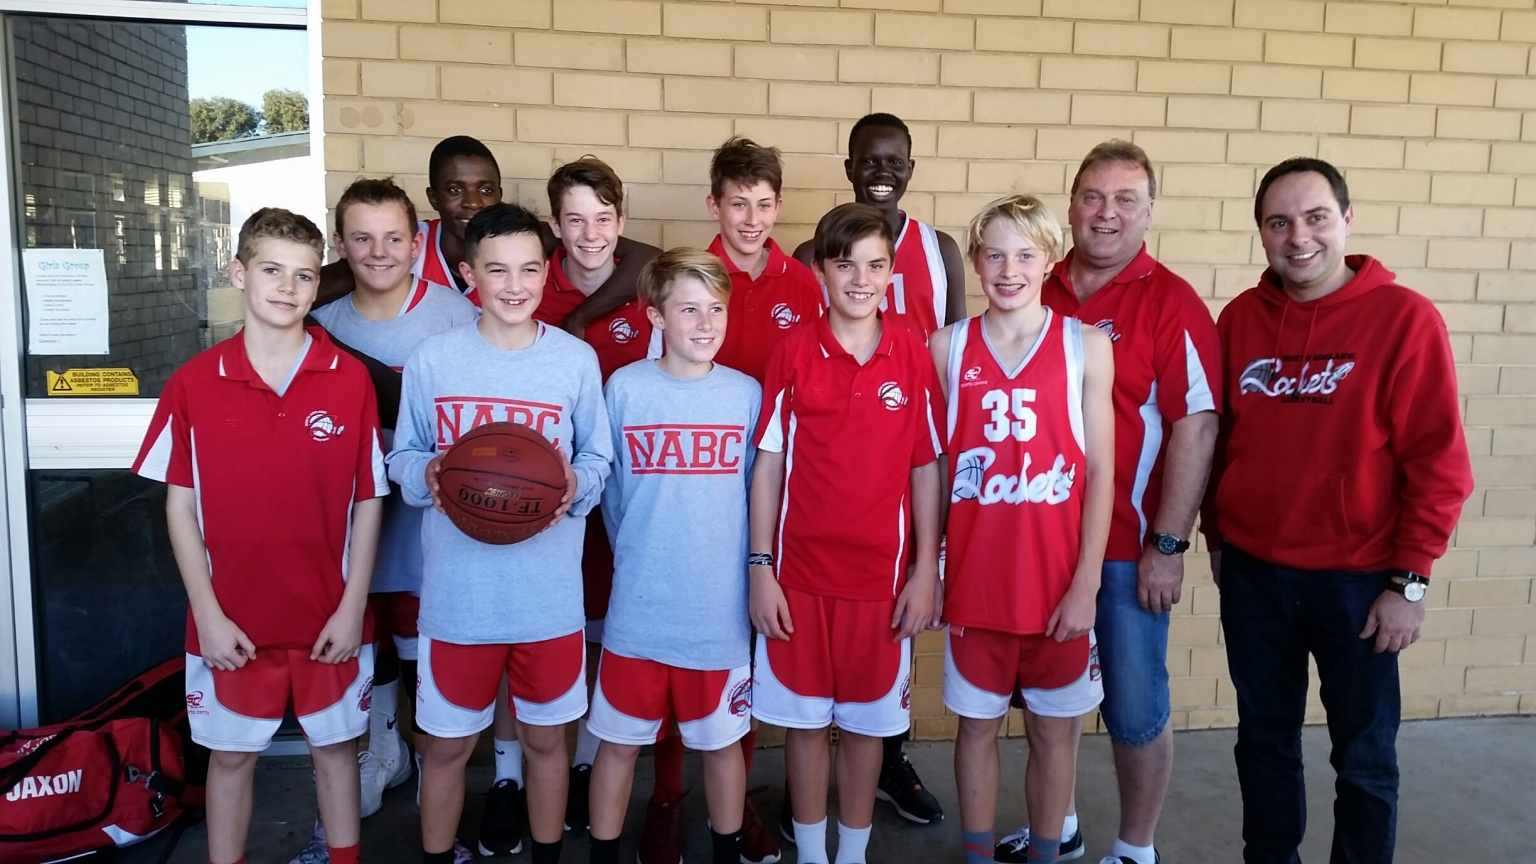 North adelaide rockets basketball club